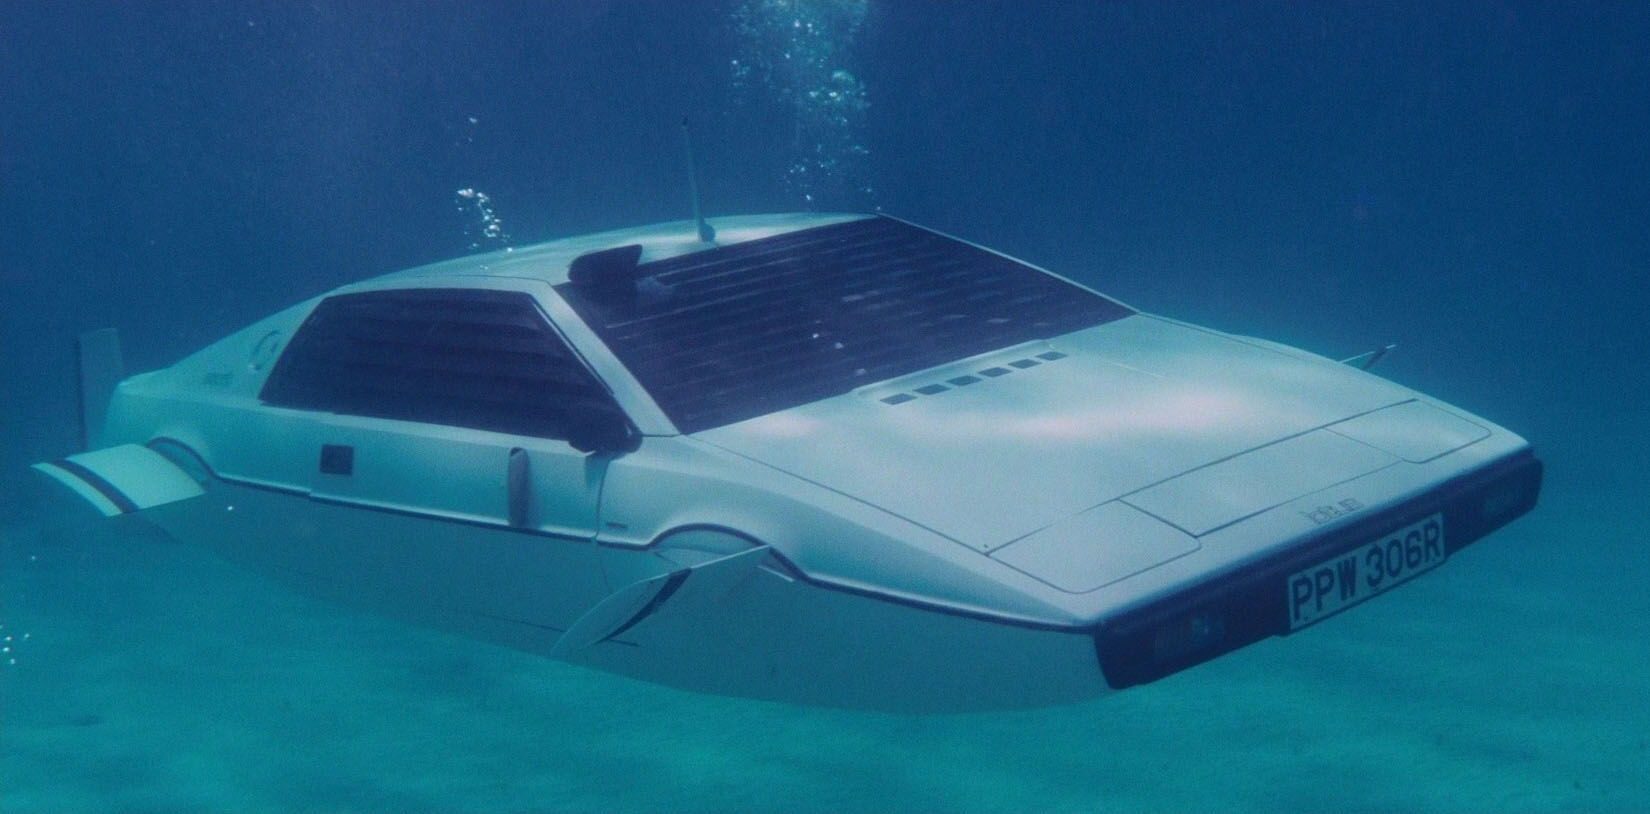 Lotus Esprit S1 Spy Who Loved Me